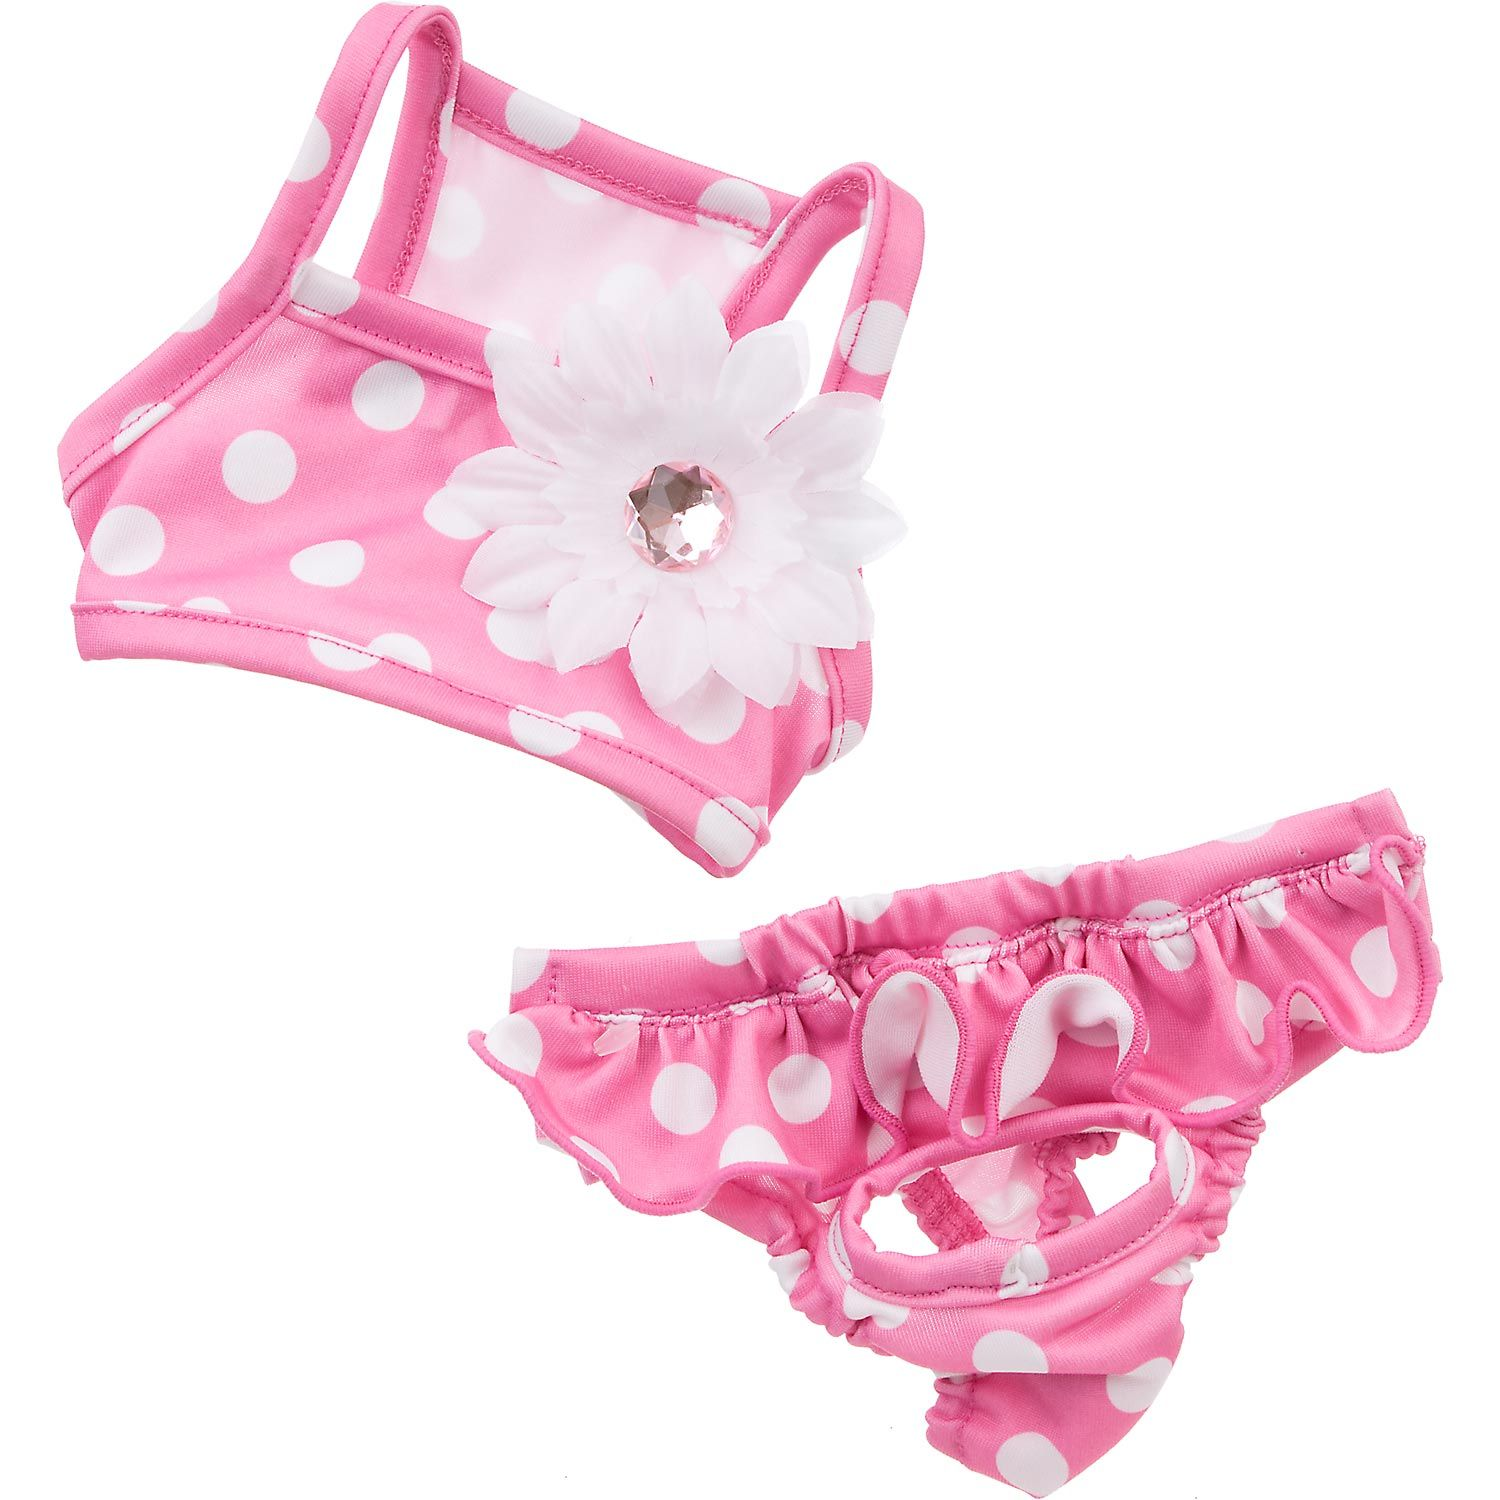 Petco Smoochie Pooch Pink Polka Dot Flower Dog Bikini Dog